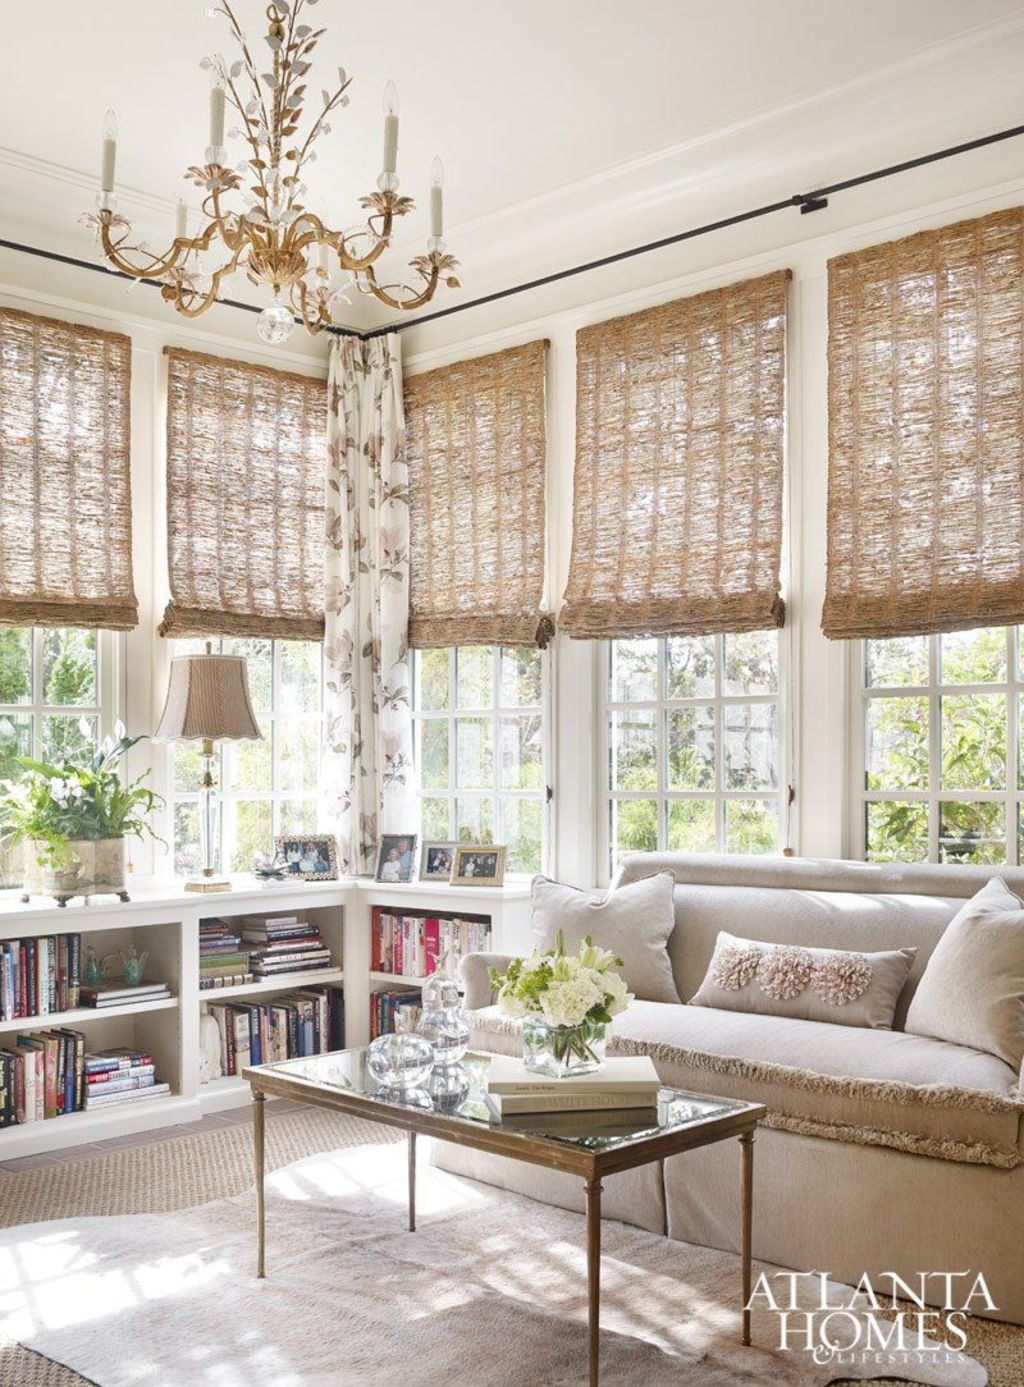 Most Popular Affordable Sunroom Design Ideas for 2019 Part 13